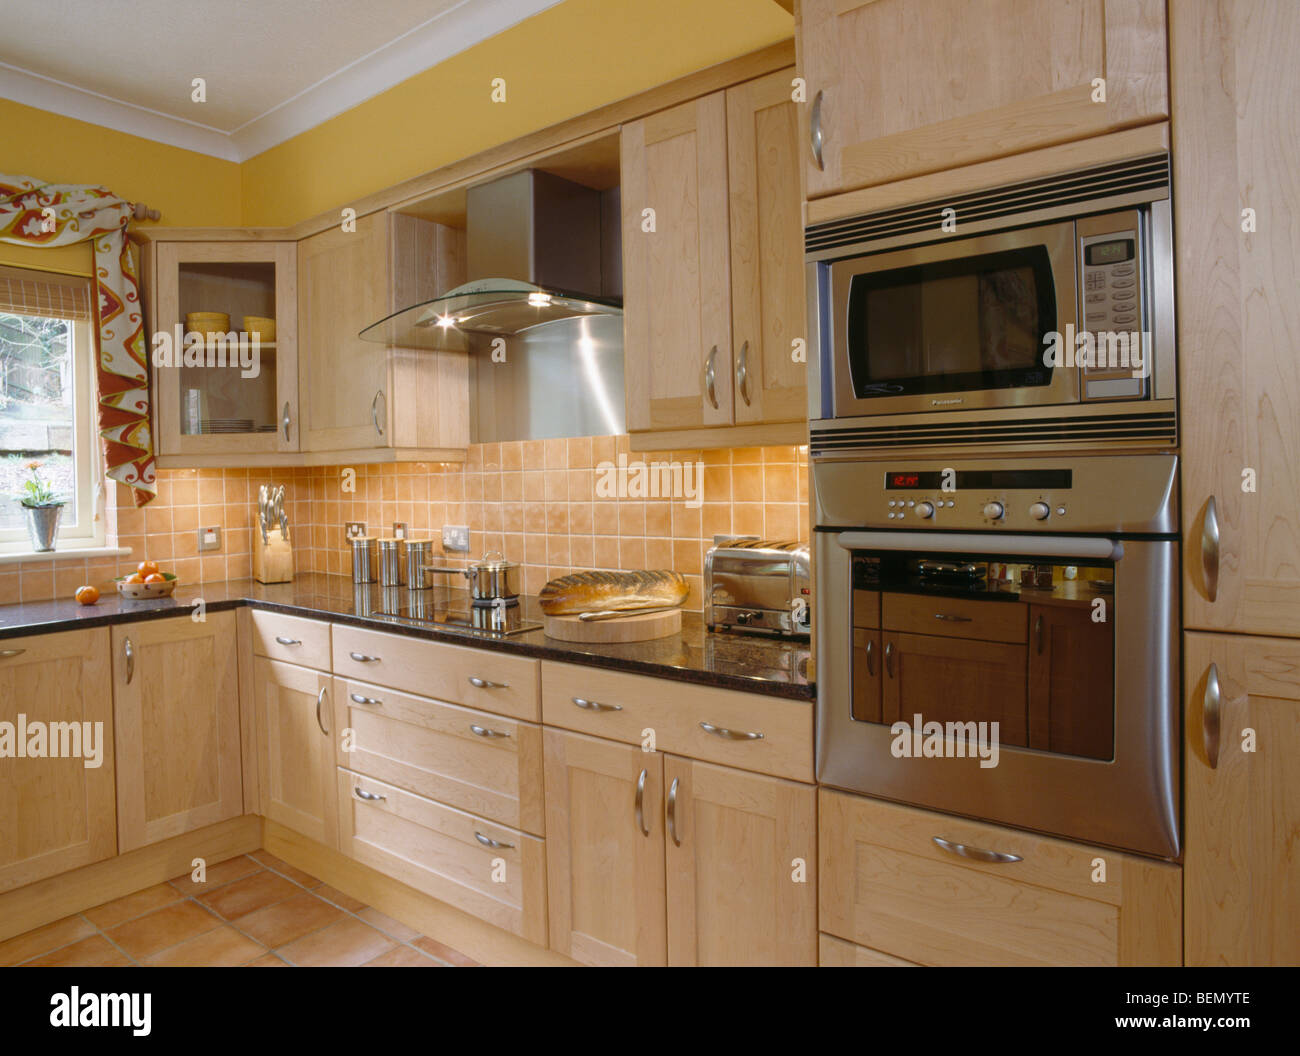 Eye Level Oven And Microwave In Modern Yellow Kitchen With